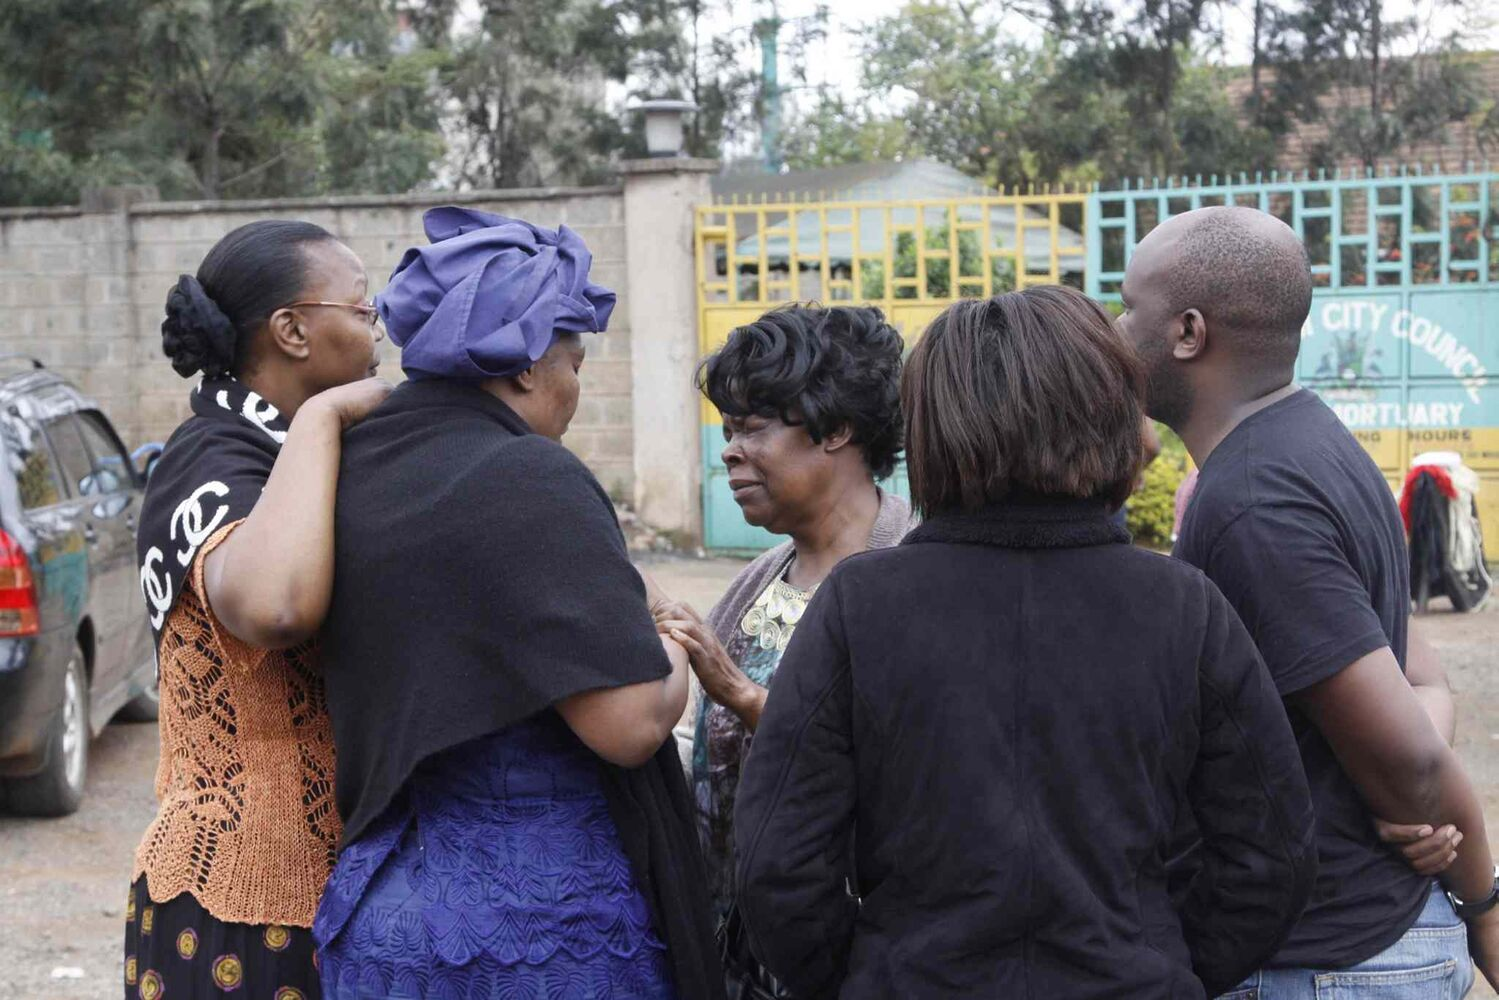 Relatives gather at  the Nairobi City Mortuary Sunday following the mall attack Saturday. Kenyan authorities said Islamic extremist attackers remain inside the upscale Kenyan shopping mall, holding an unknown number of hostages, after killing dozens and injuring 150. (Khalil Senosi / The Associated Press)